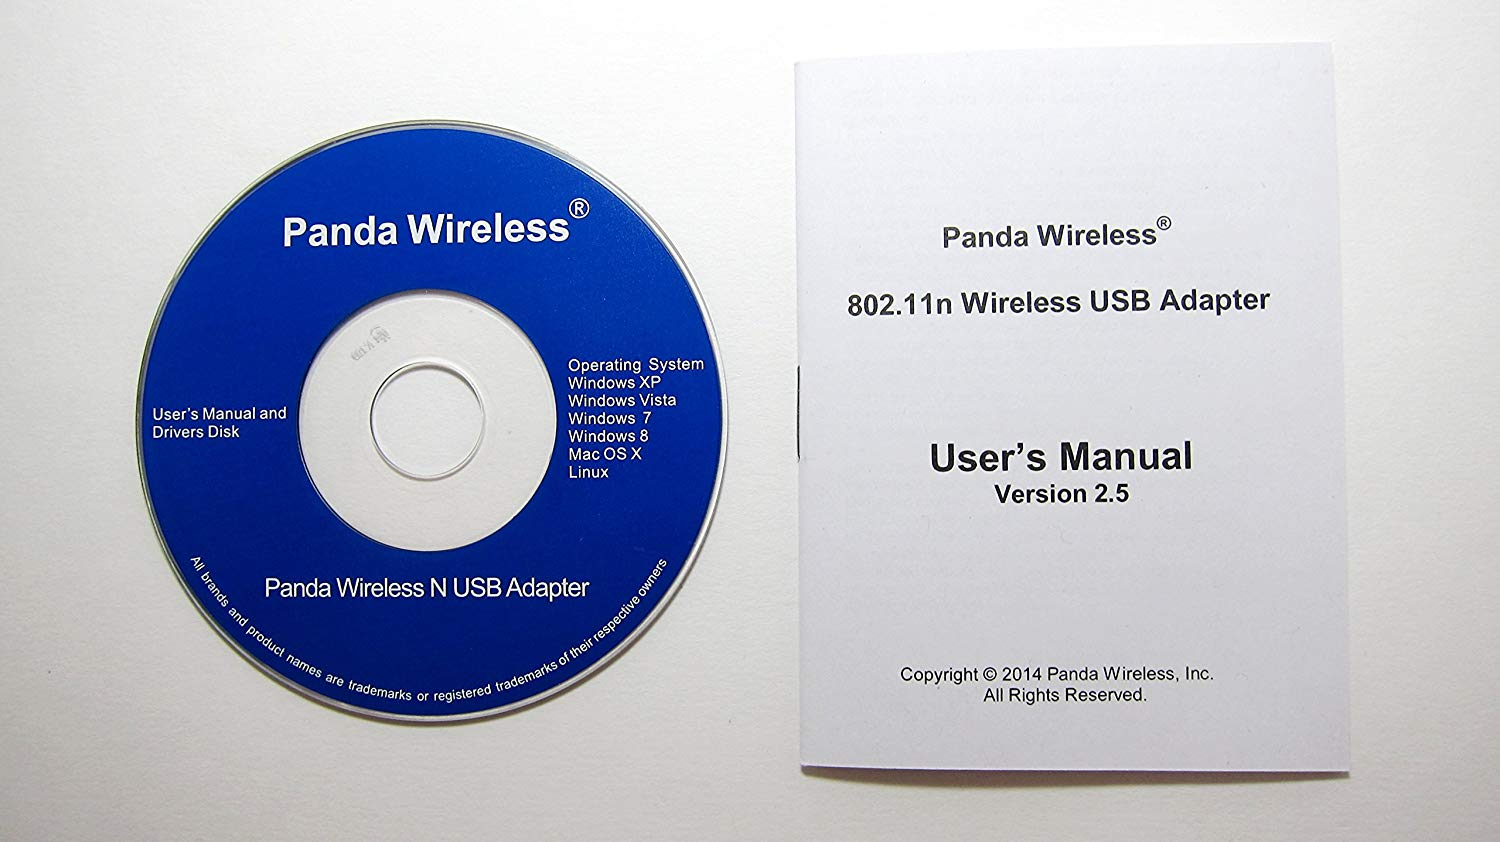 Panda Wireless PAU06 300Mbps Wireless N USB Adapter w// High Gain Antenna